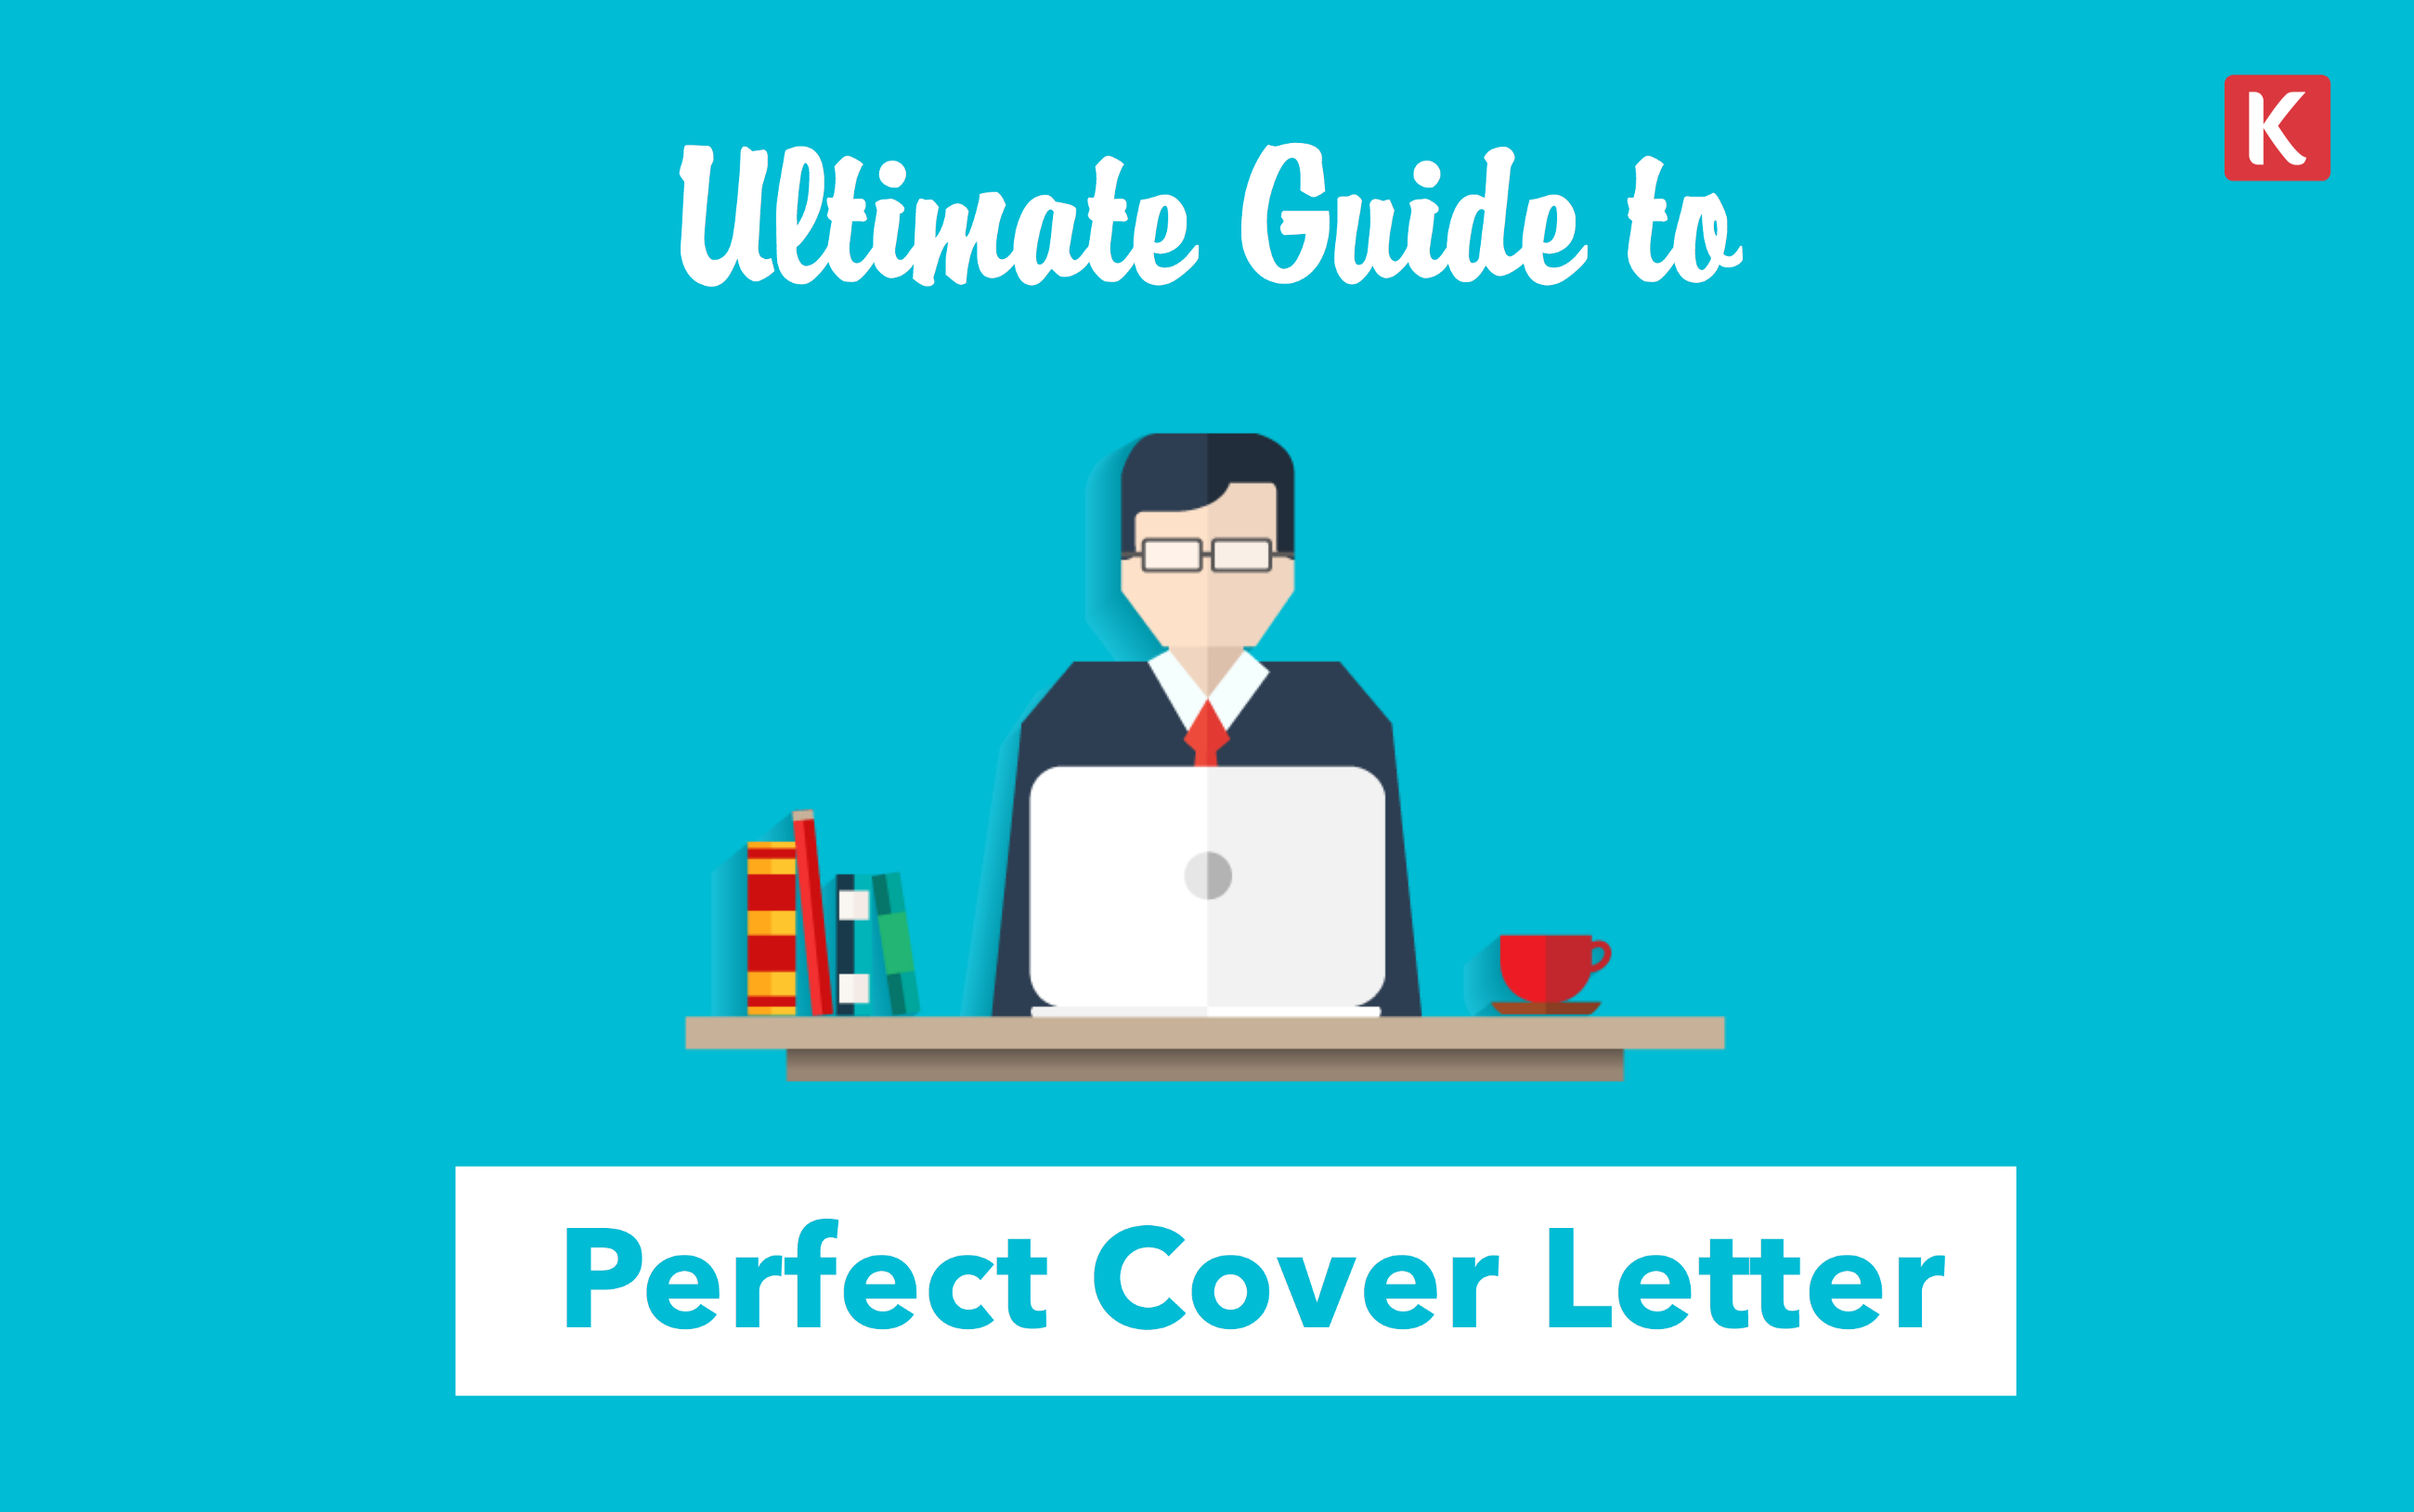 The Ultimate Guide To Writing A Perfect Cover Letter